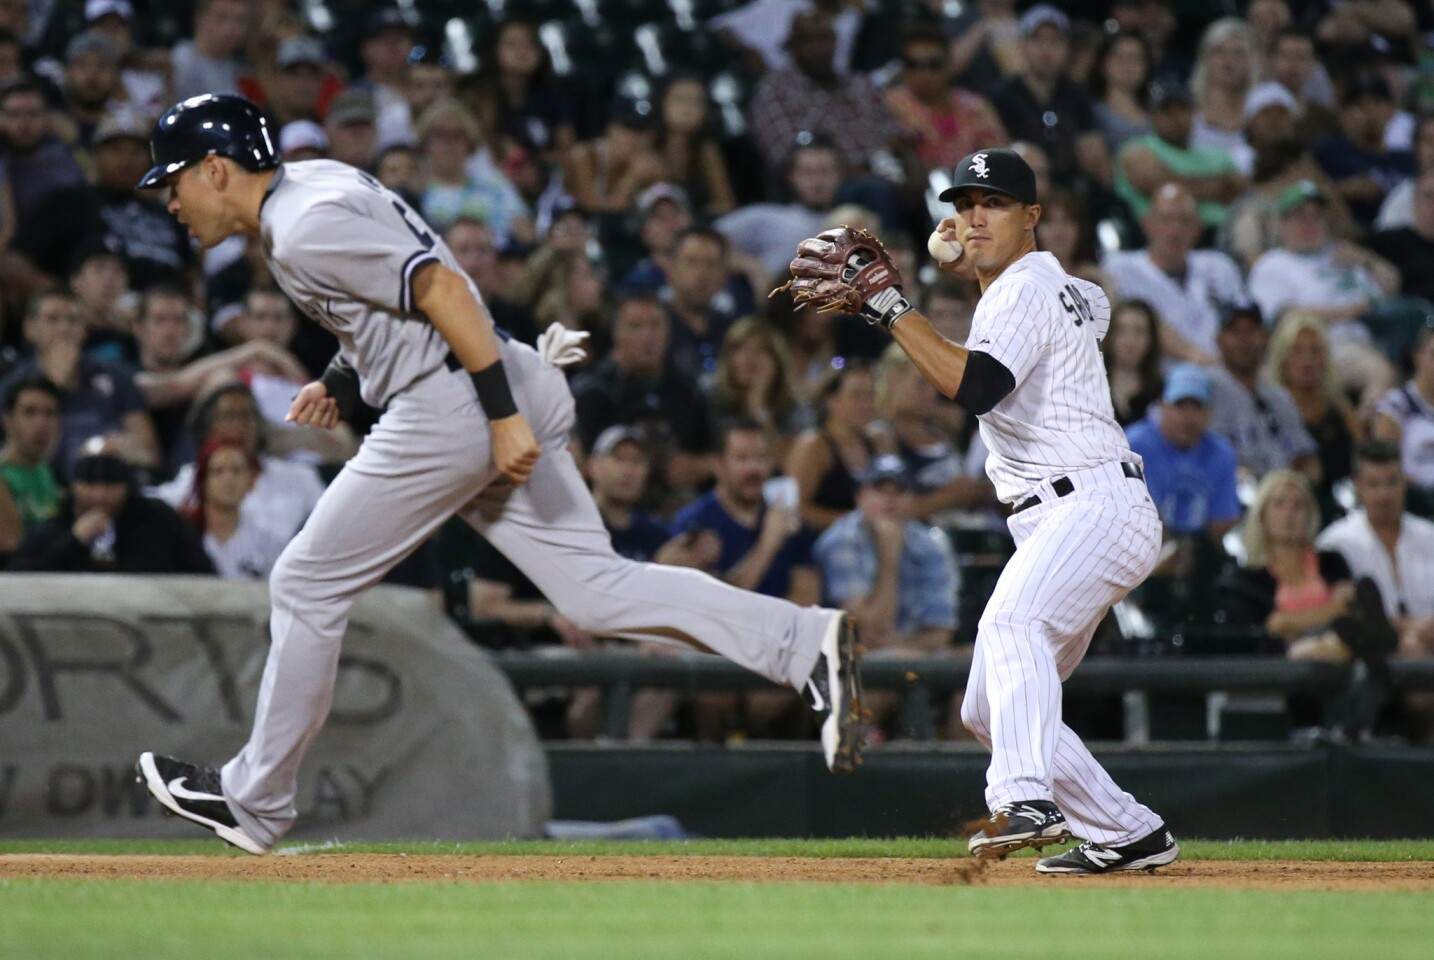 White Sox third baseman Tyler Saladino, right, winds up for the throw to first base as New York Yankees center fielder Jacoby Ellsbury heads for third base in the sixth inning.